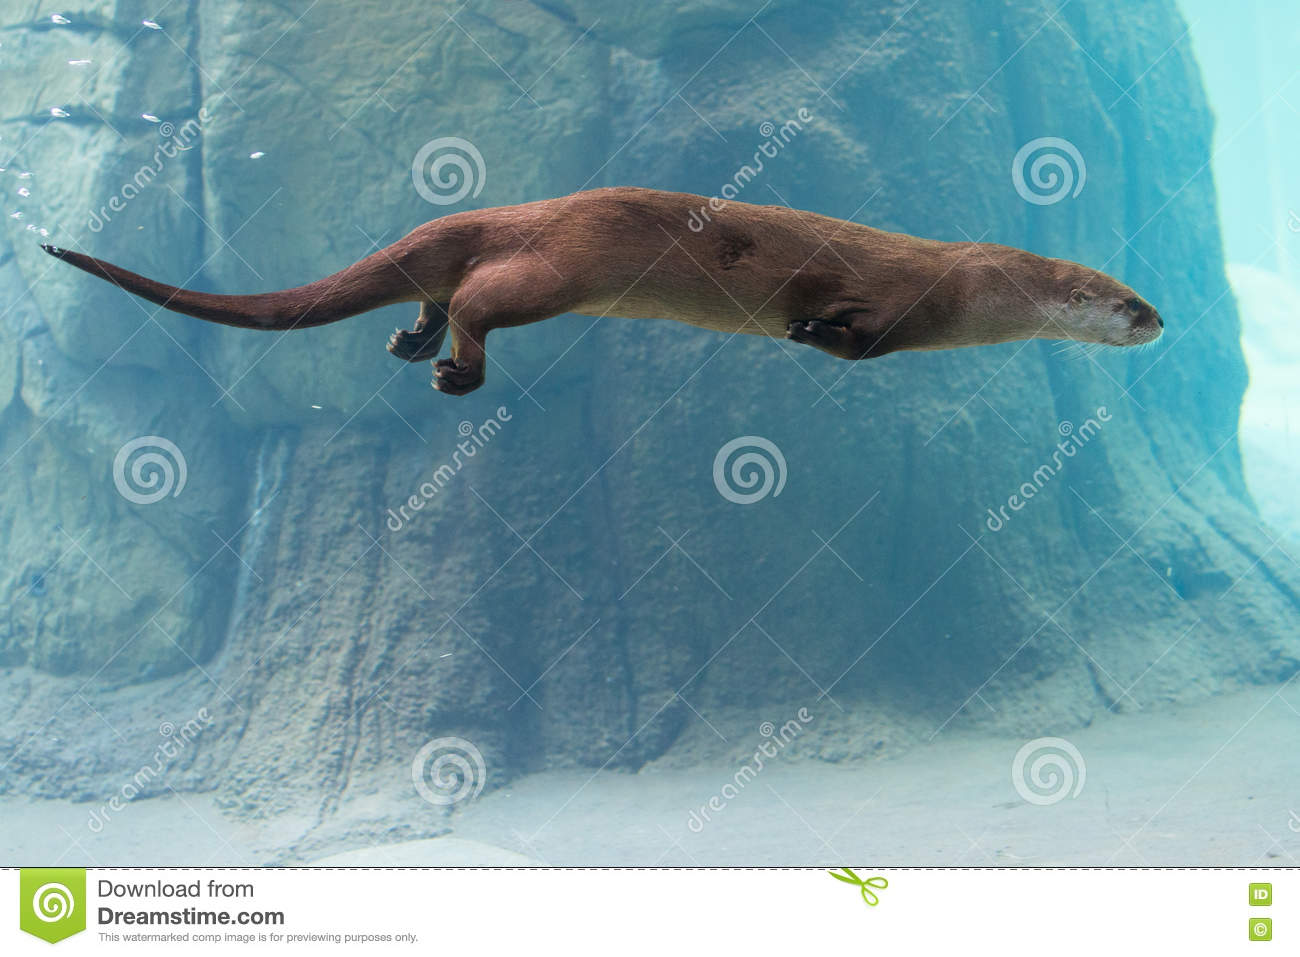 c859ea8b1 Otter swimming in water stock photo. Image of animal - 80009820